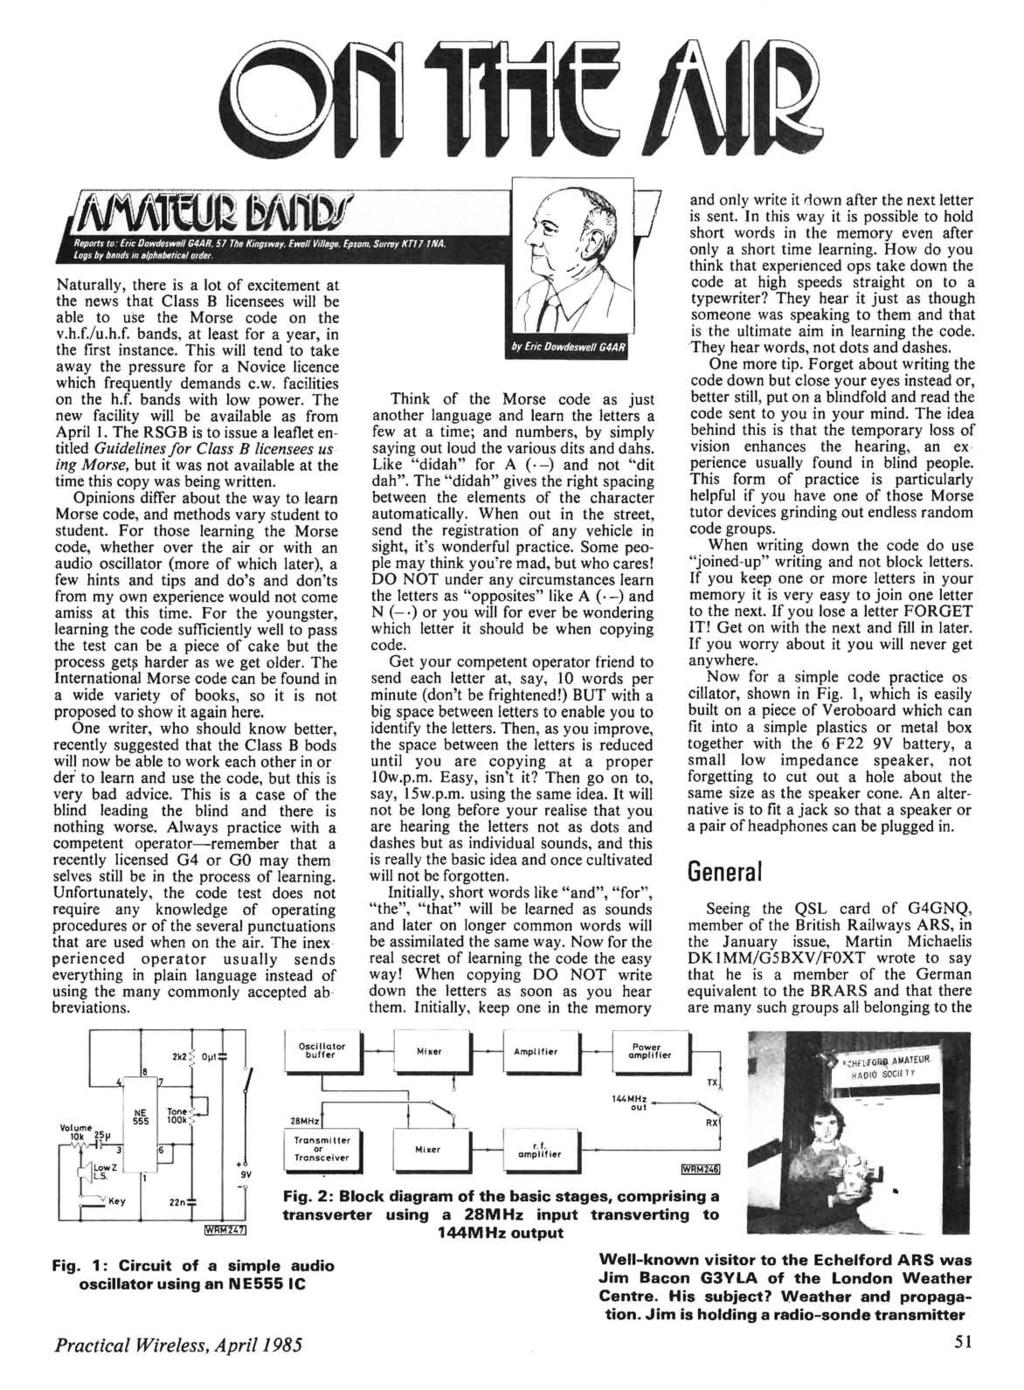 Pw Colne With Audio Agc Direct Conversion Receiver Pdf Figure 2 3 Am Radiotelephone Transmitter Block Diagram Naturally There Is A Lot Of Excitement At The News That Class B Licensees Will